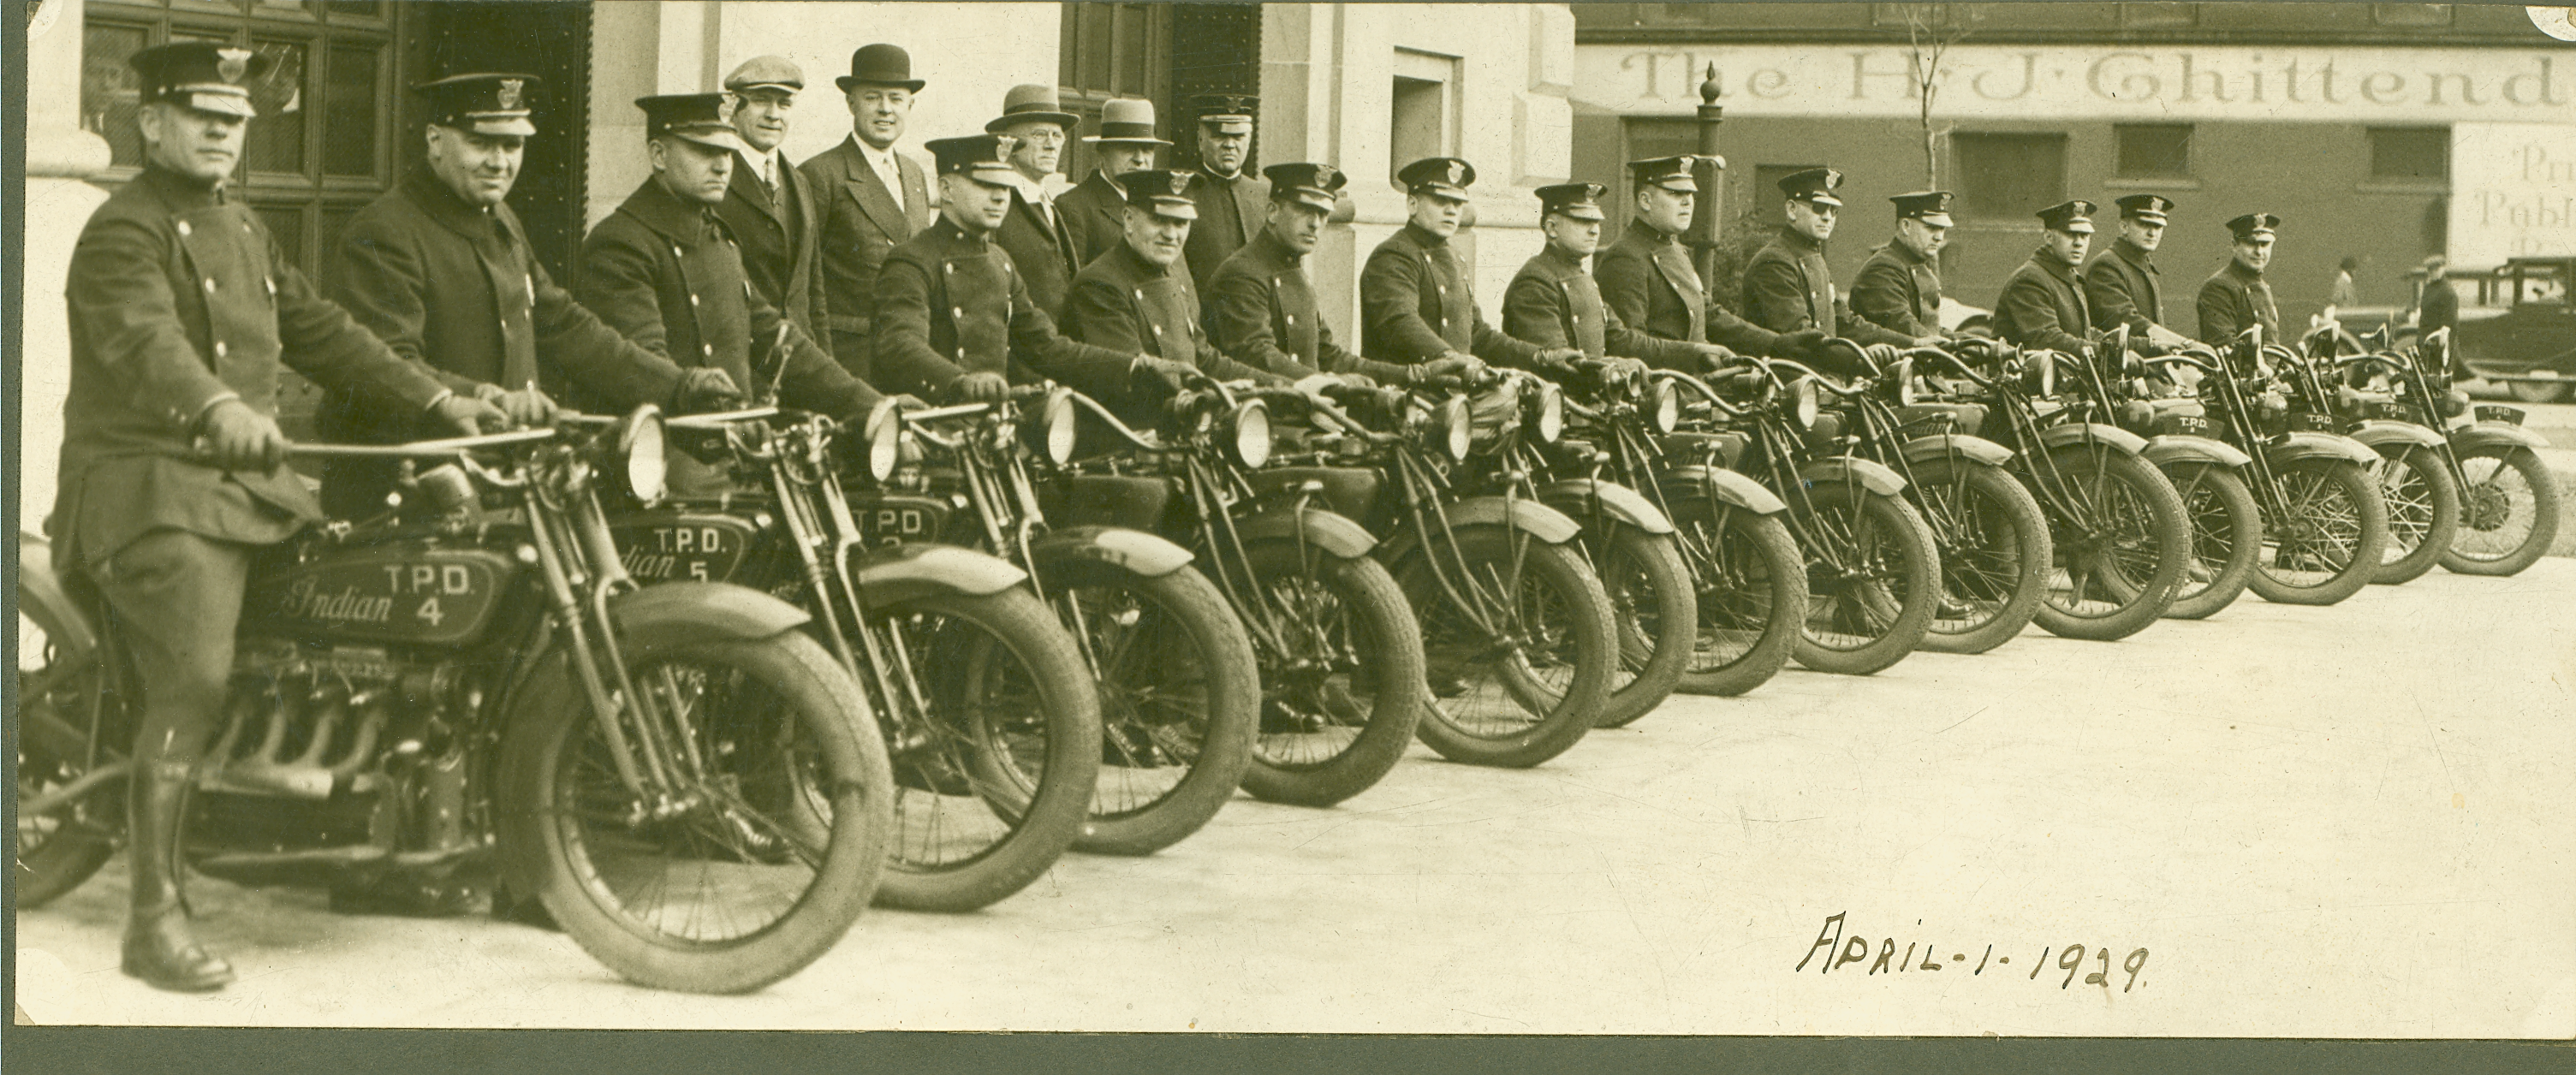 motorcycle-unit-on-safety-building-ramp-april-1-1929-tpmi-164